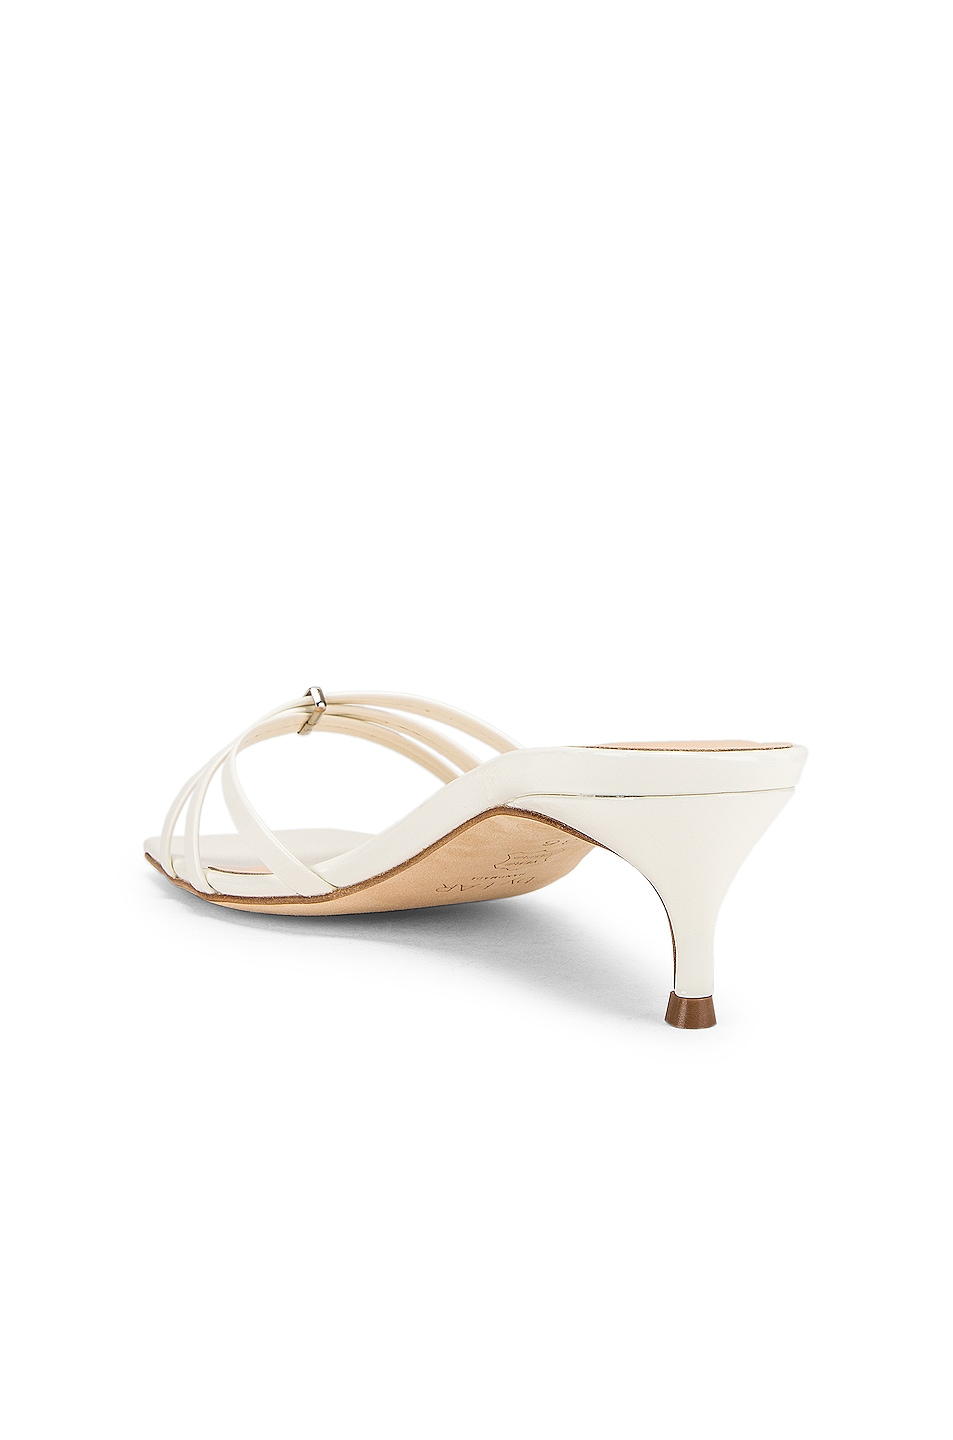 Image 3 of By Far Libra Sandal in White Patent Leather